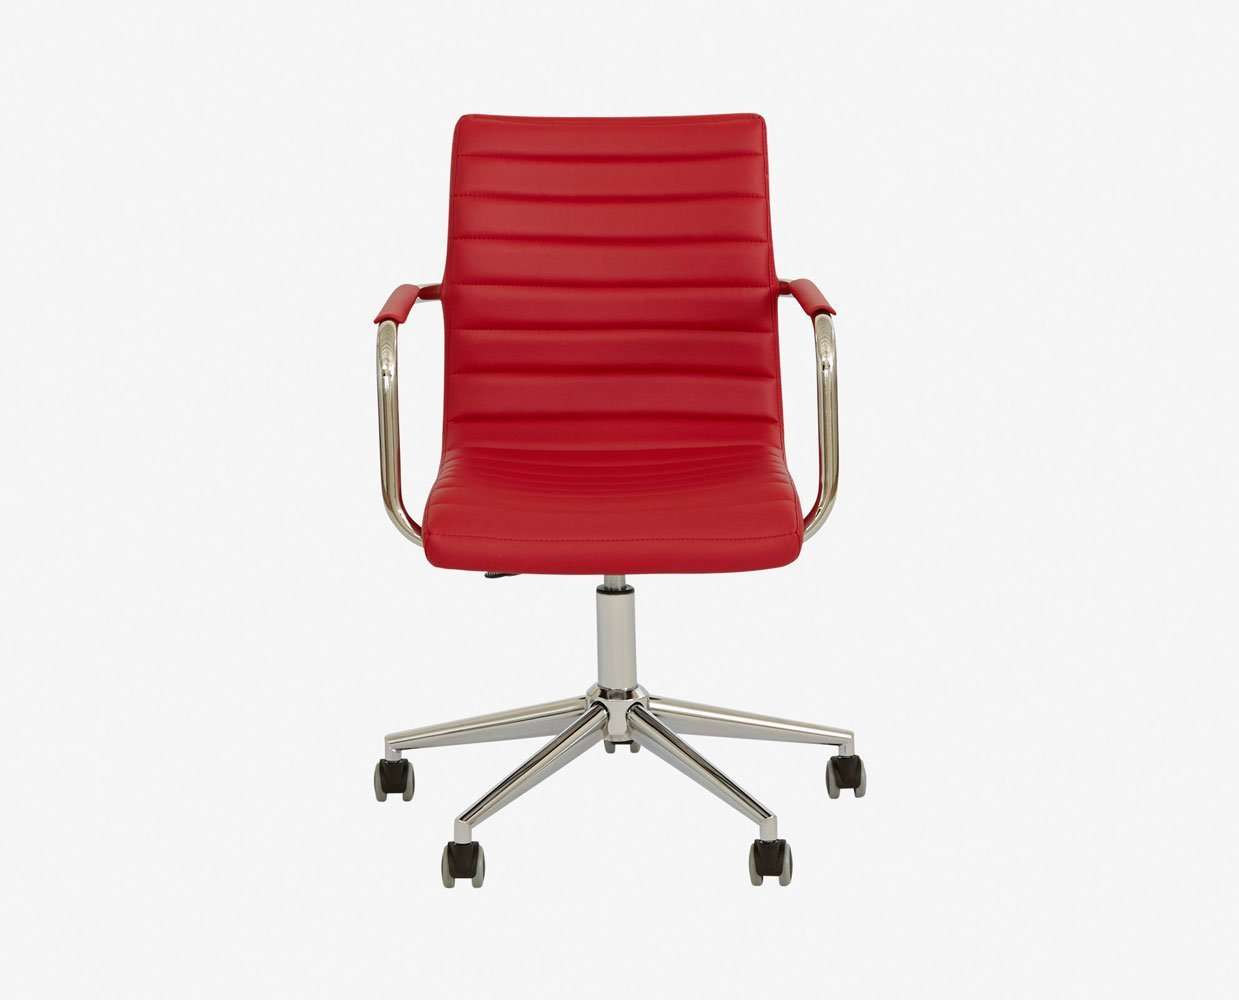 Kontor Low Back Desk Chair - Scandinavian Designs